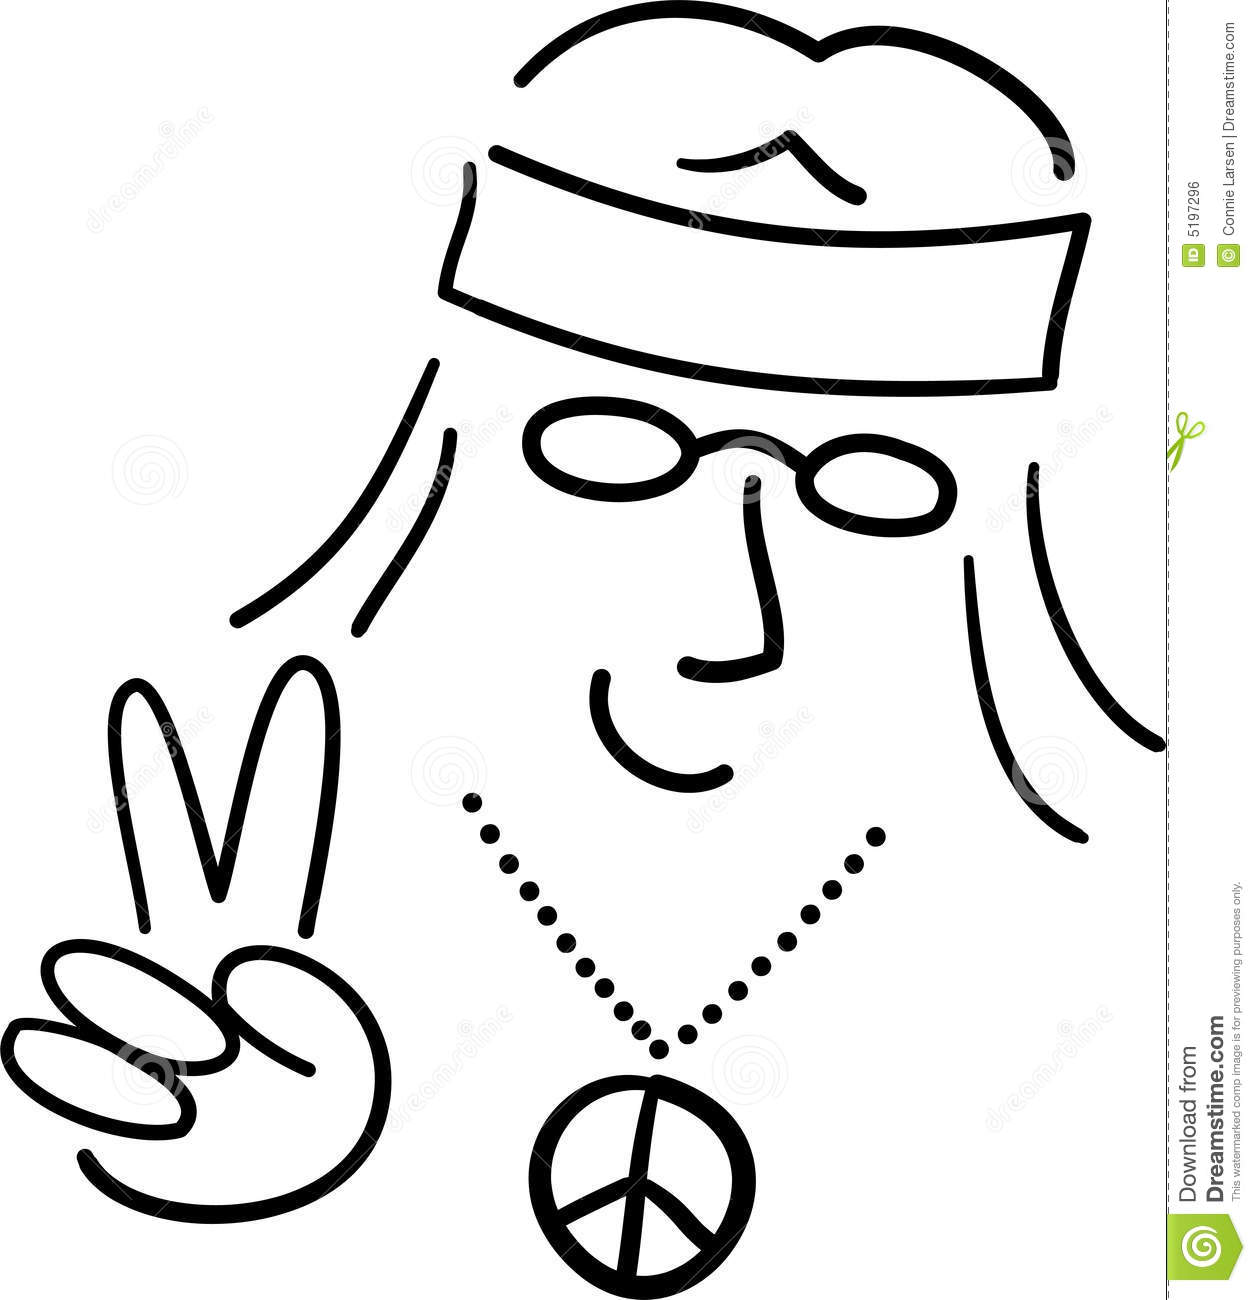 Cartoon Hippie Peace Dude/ai Royalty Free Stock Image - Image: 5197296